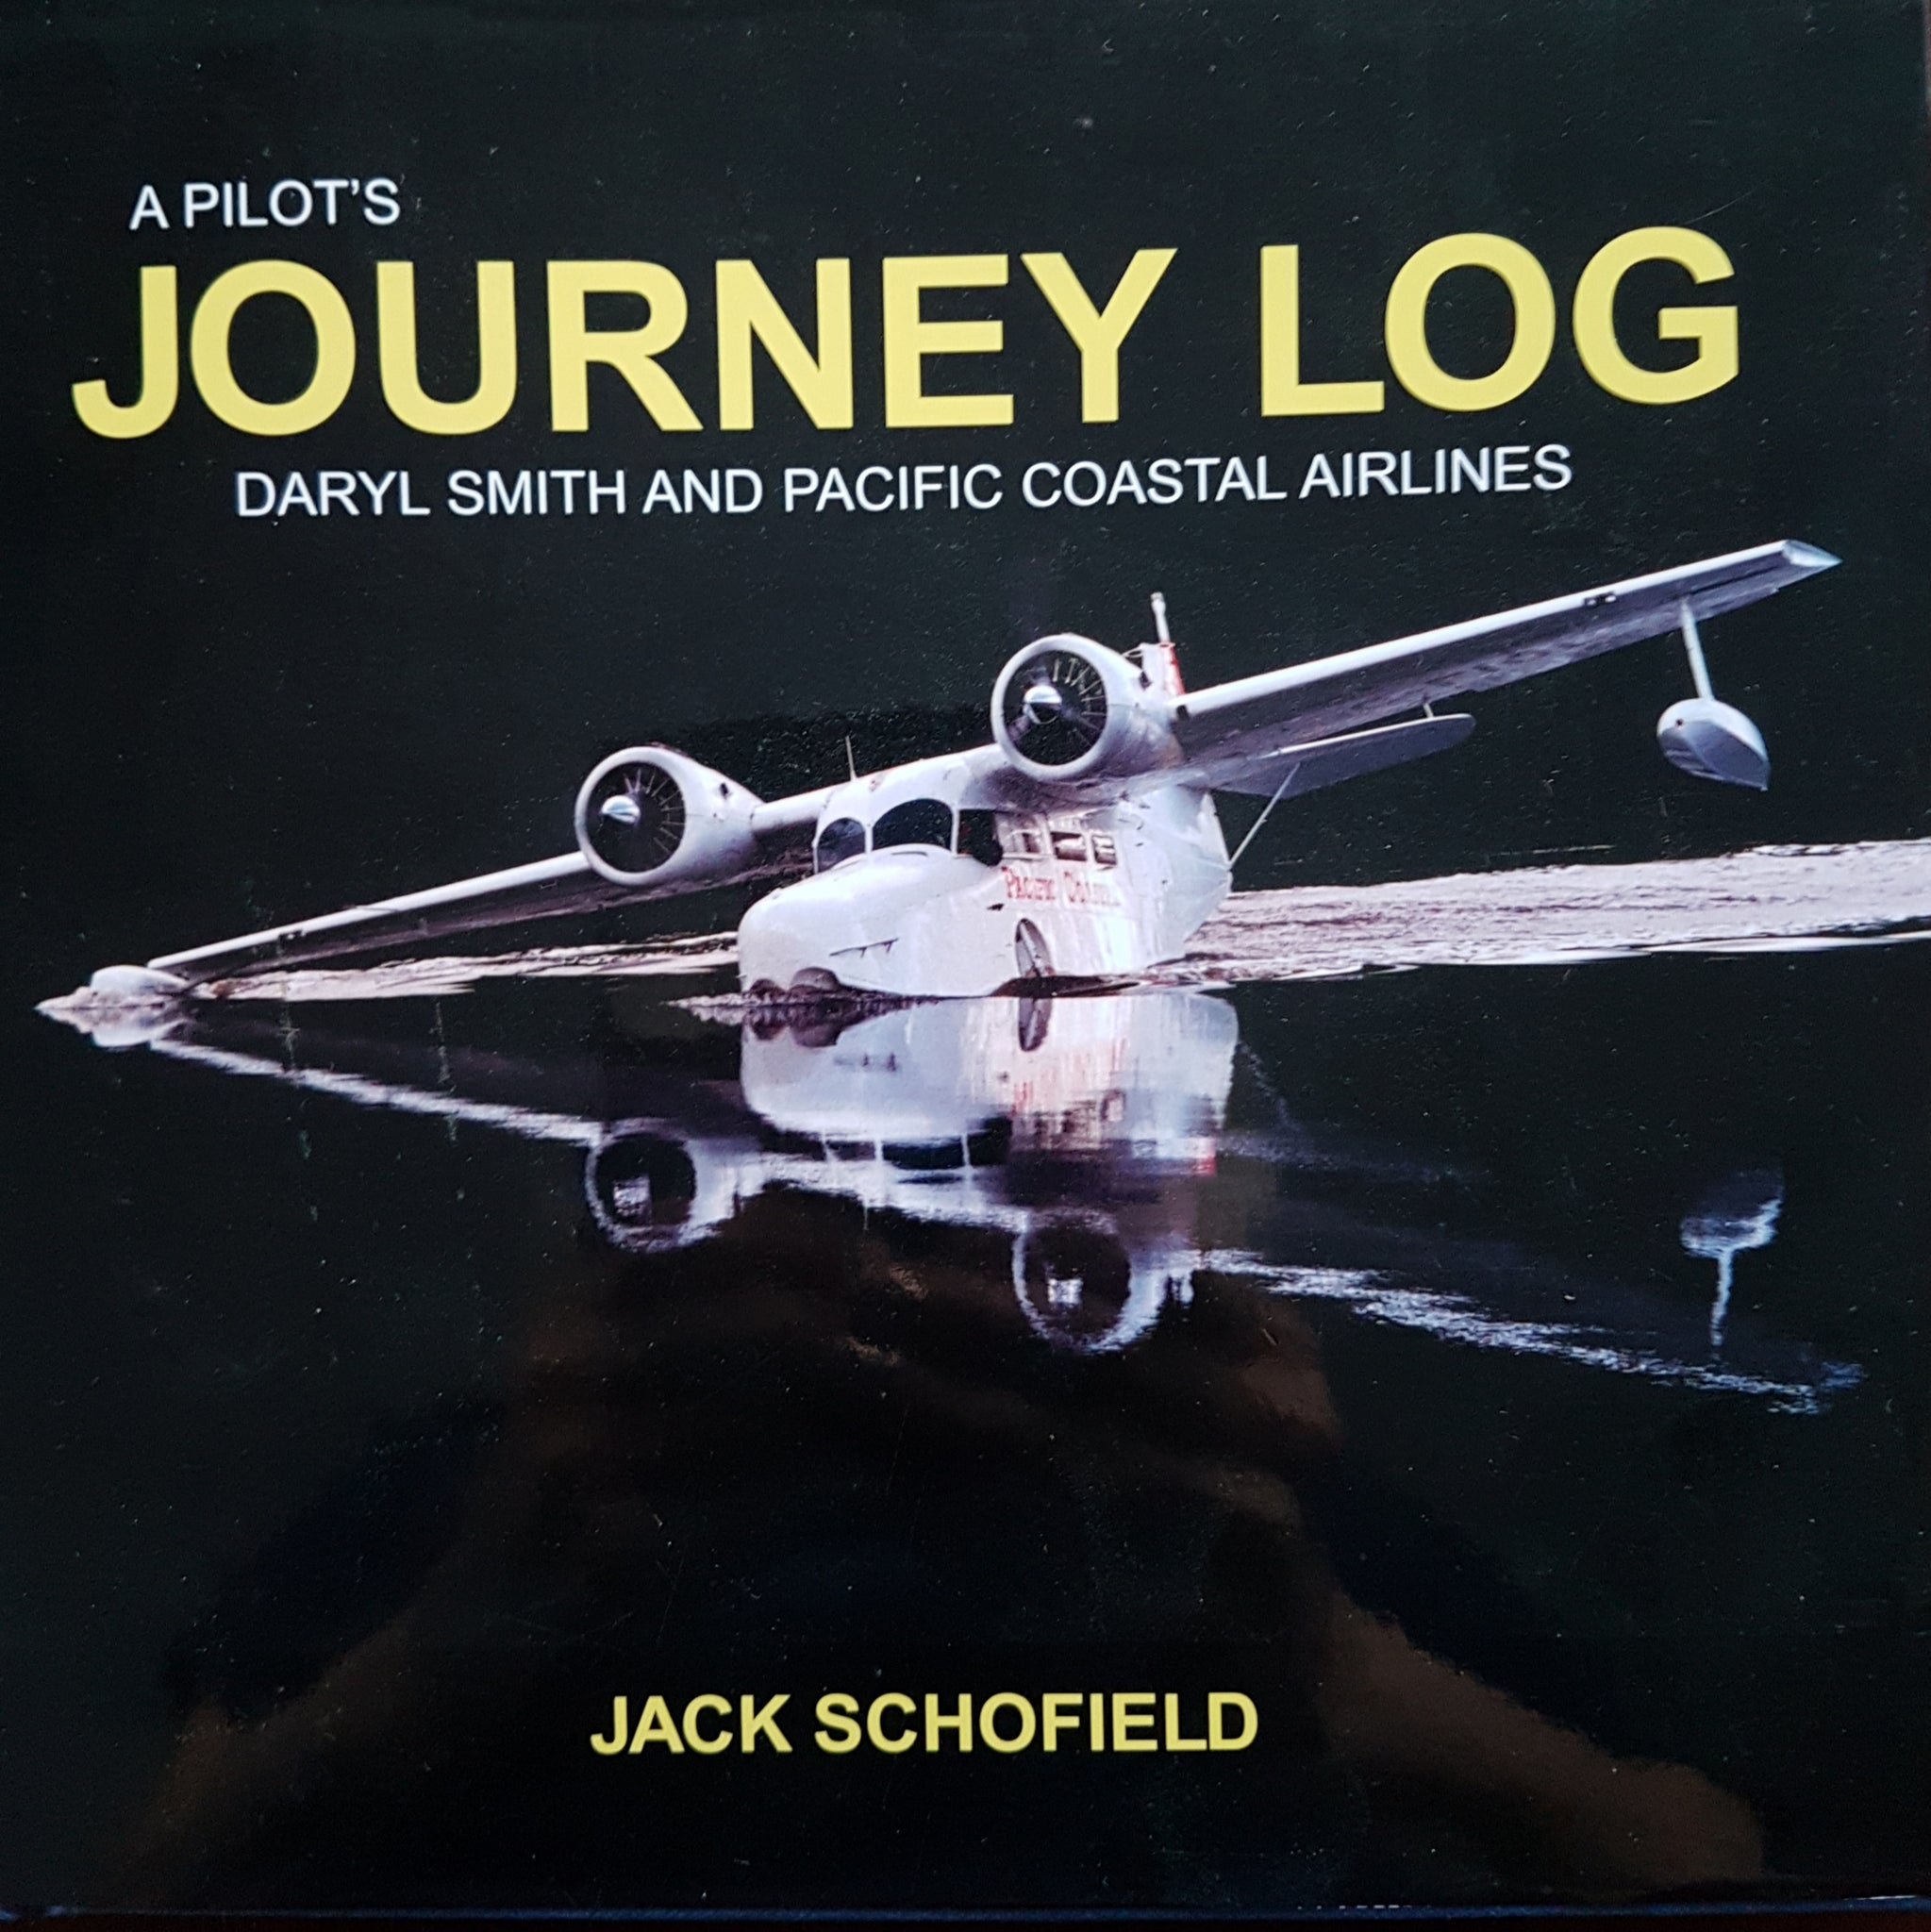 A Pilot's Journey Log (by Jack Schofield)